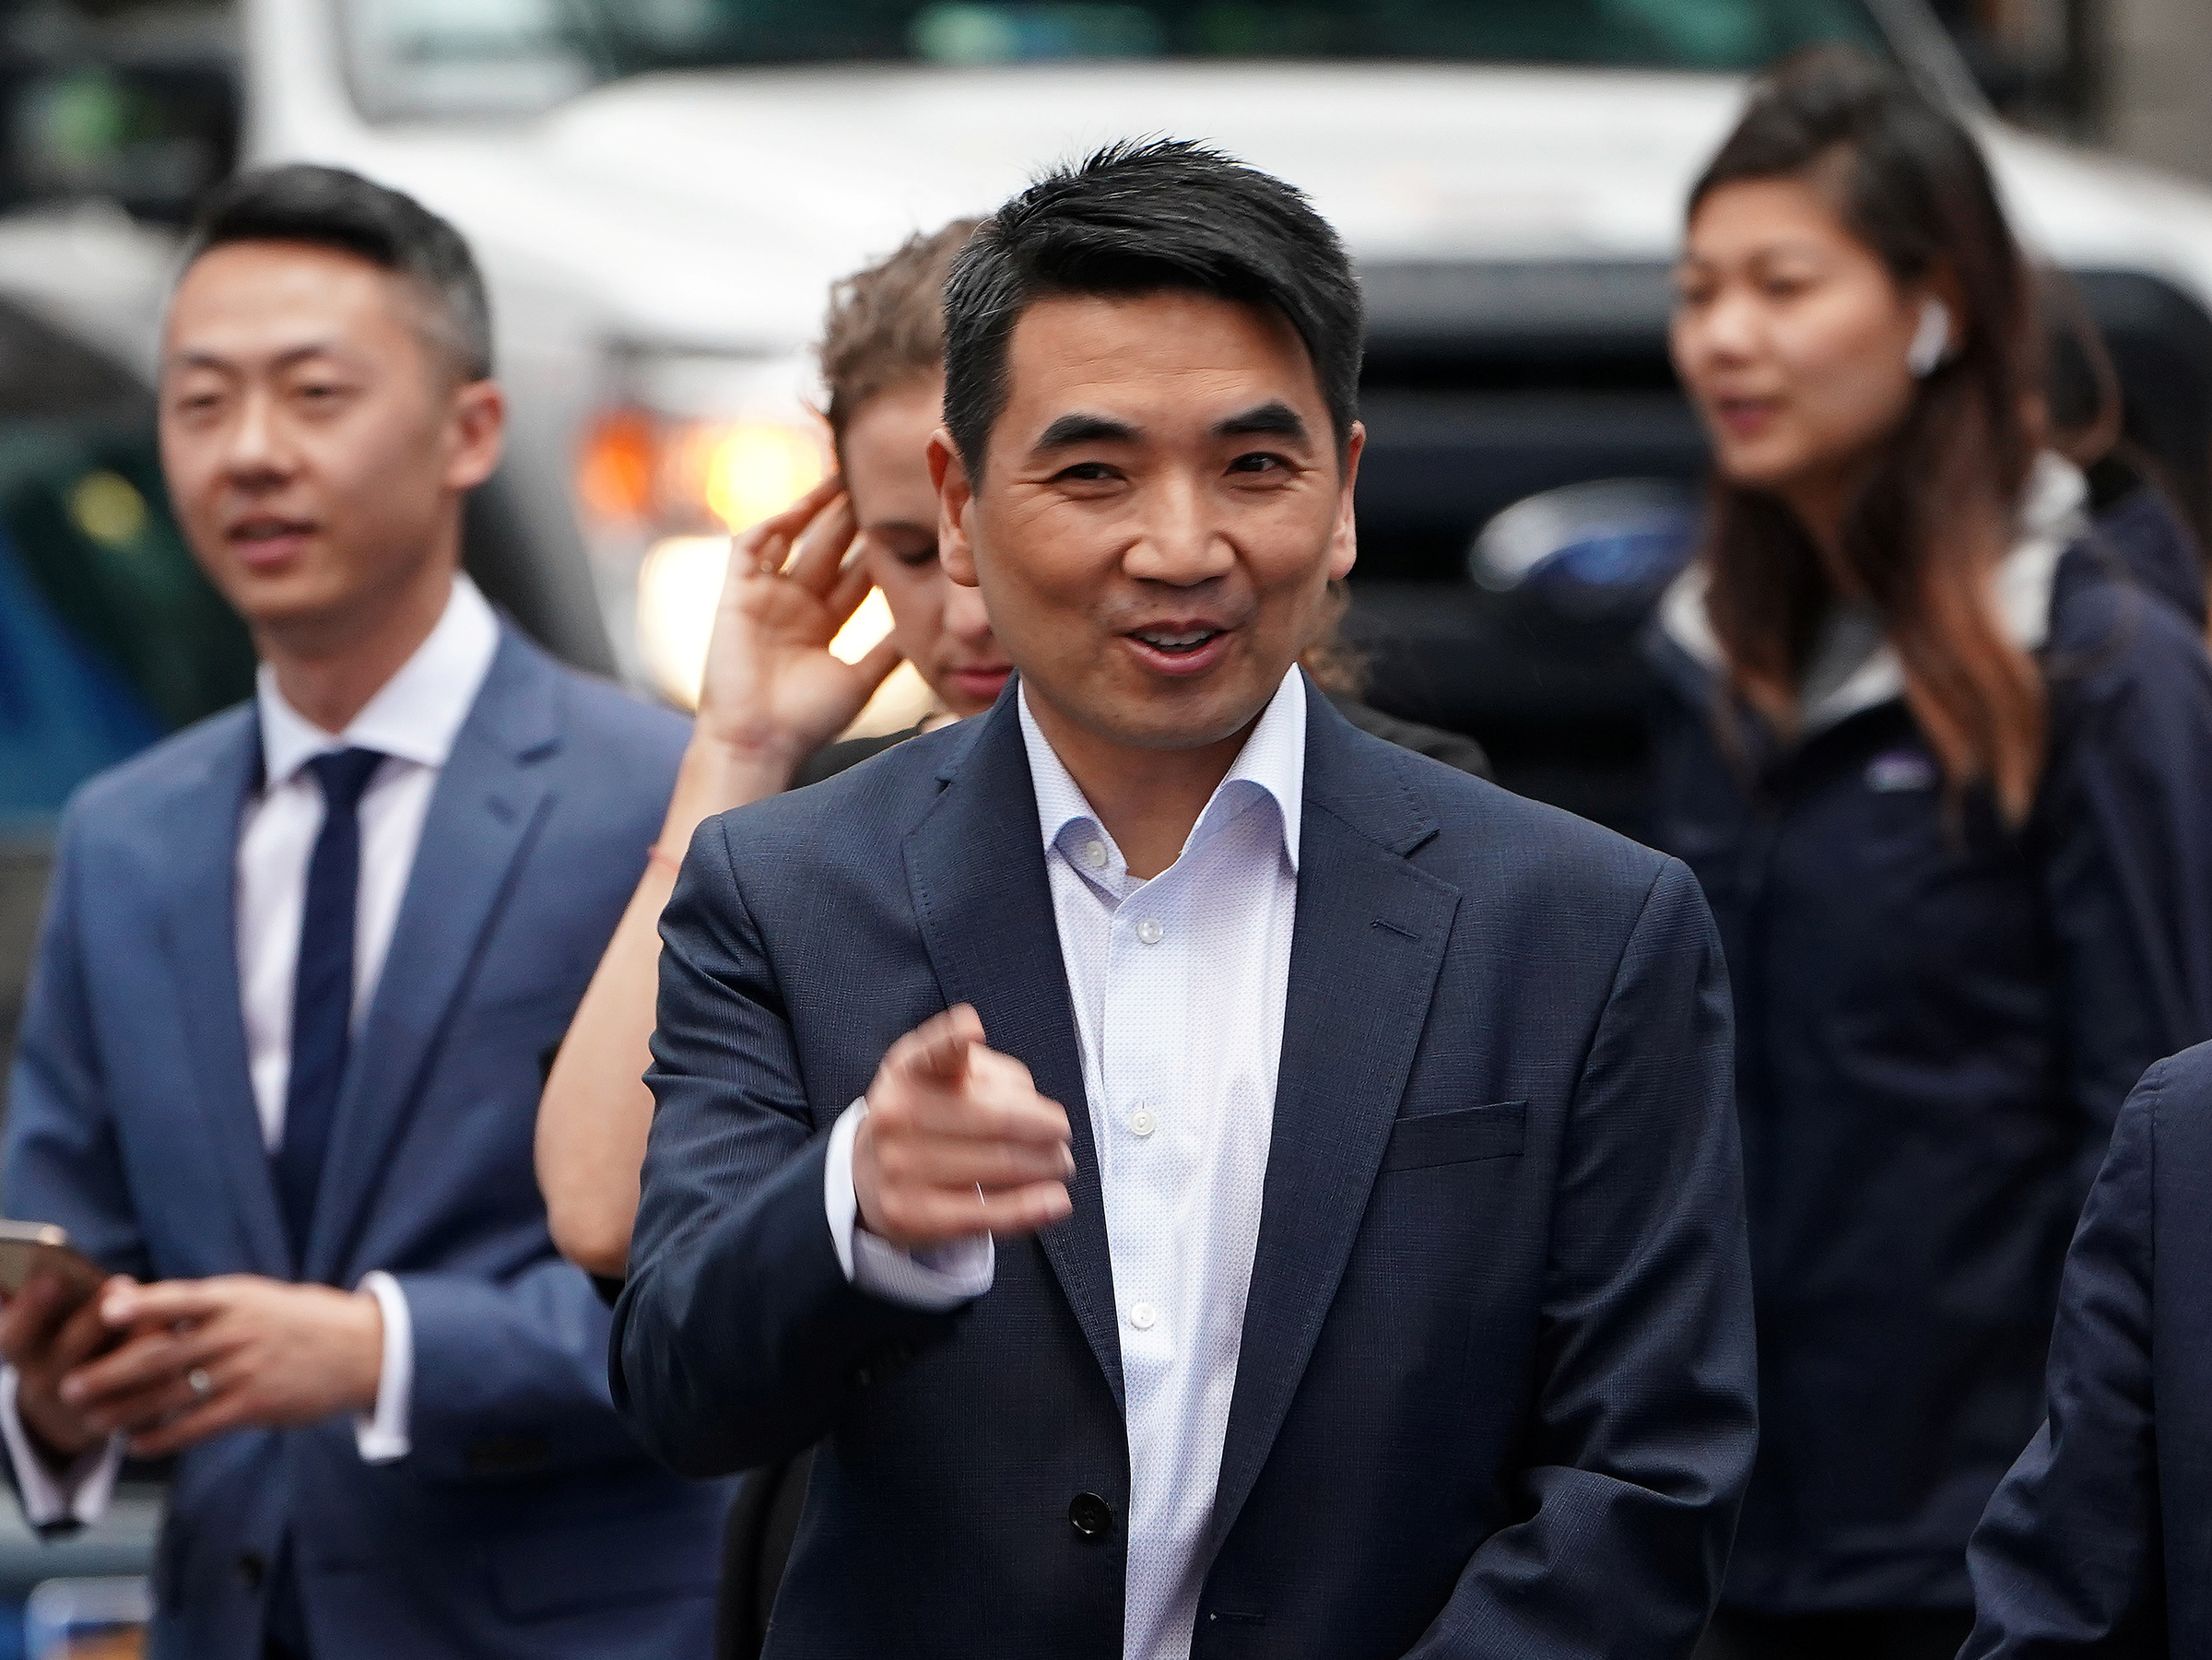 FILE PHOTO: Eric Yuan, CEO of Zoom Video Communications walks on the street as he takes part in a bell ringing ceremony at the NASDAQ MarketSite in New York, New York, U.S., April 18, 2019. REUTERS/Carlo Allegri